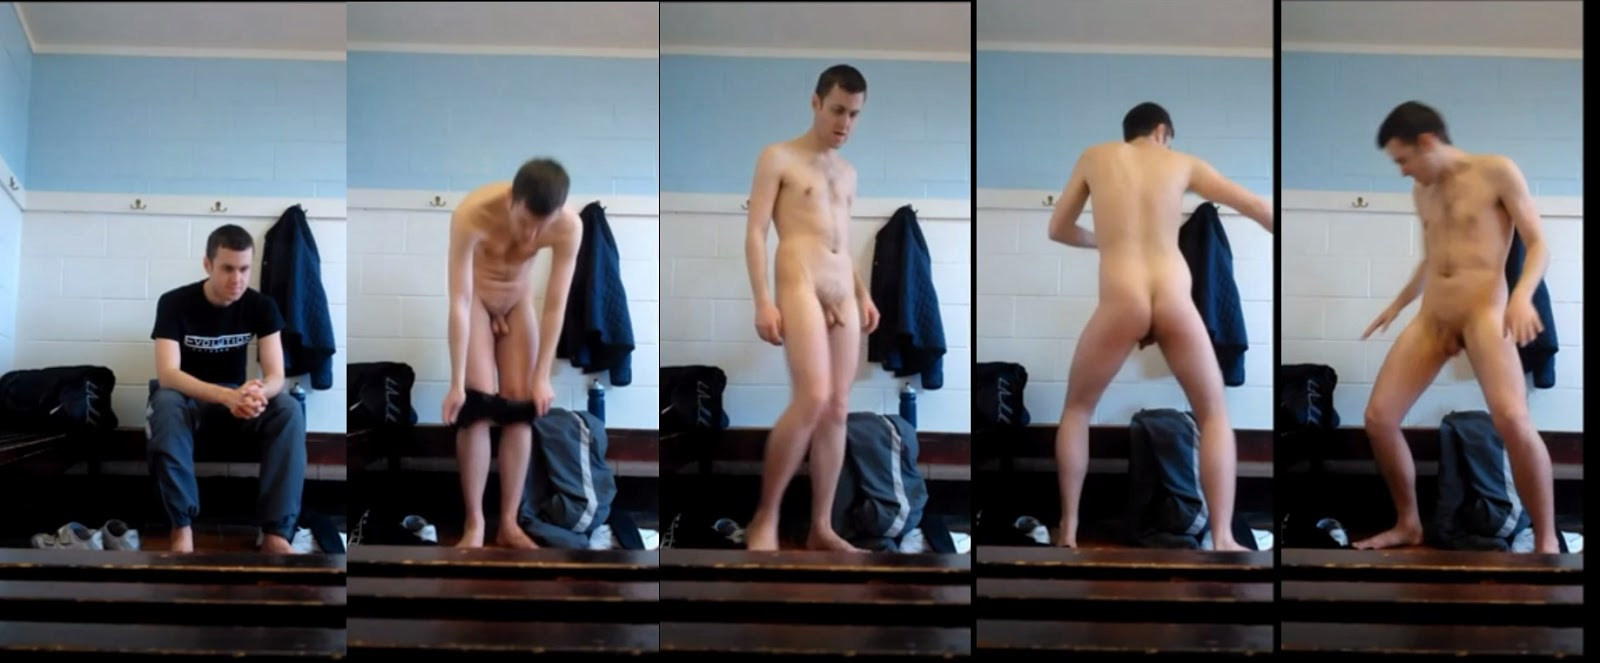 guy changing clothes